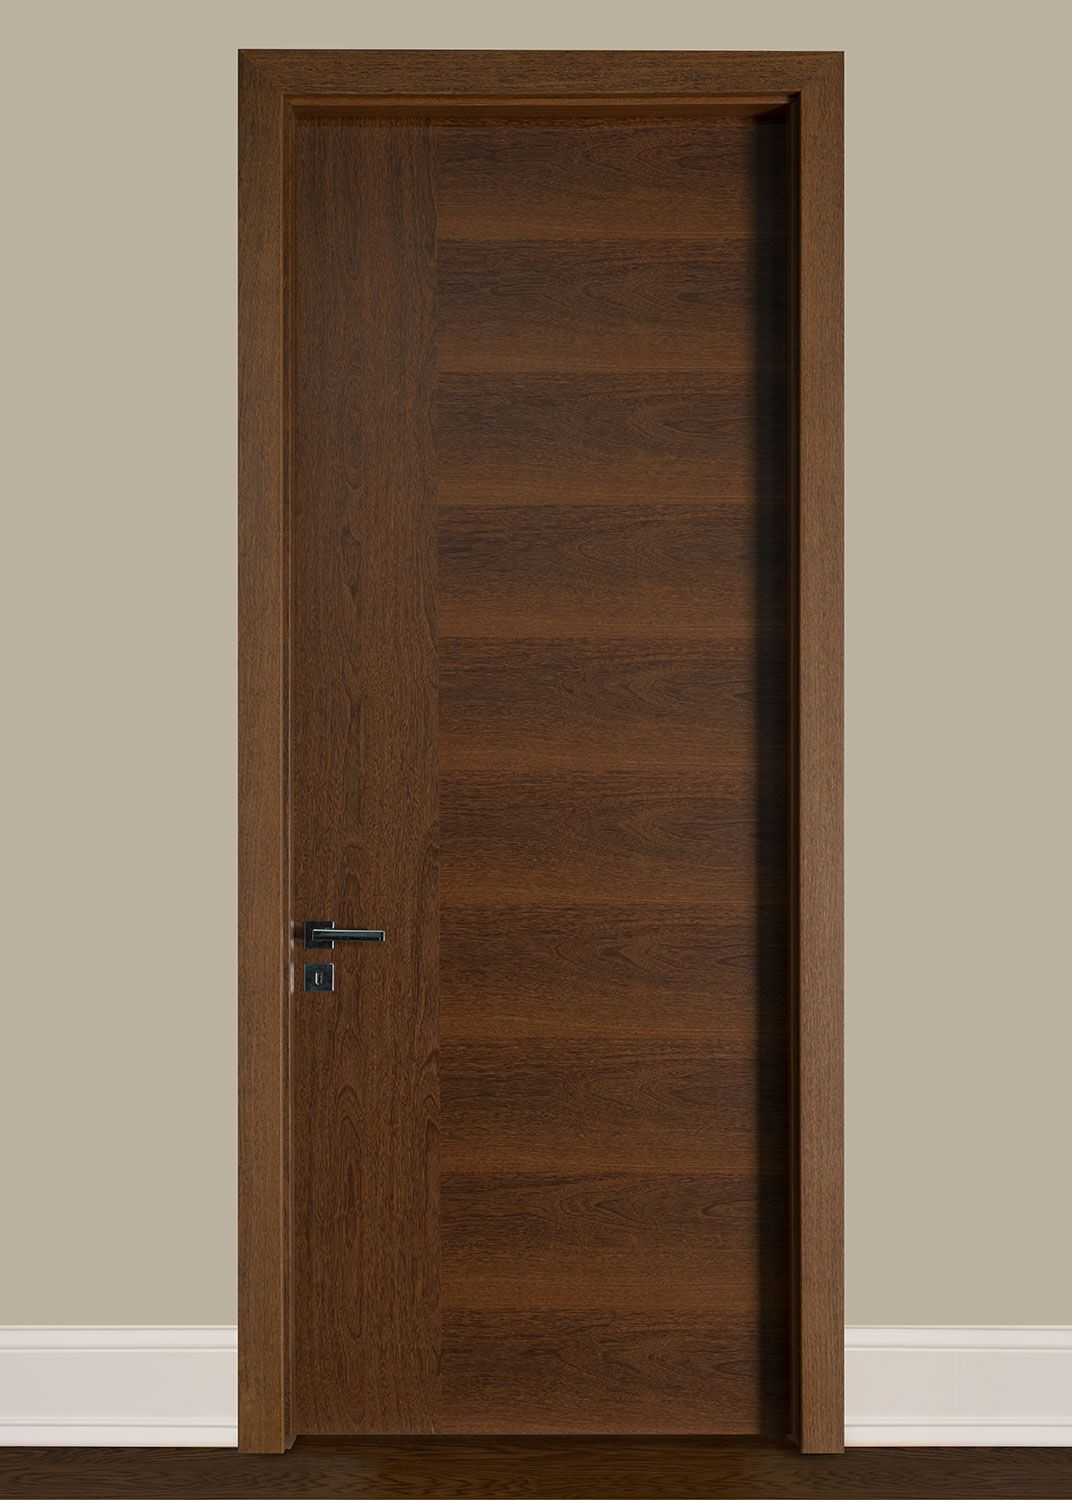 Custom Interior Door Single Wood Veneer Solid Core Wood With Natural Sucupira Finish Modern Model Dbim In 2020 Doors Interior Wooden Doors Custom Interior Doors